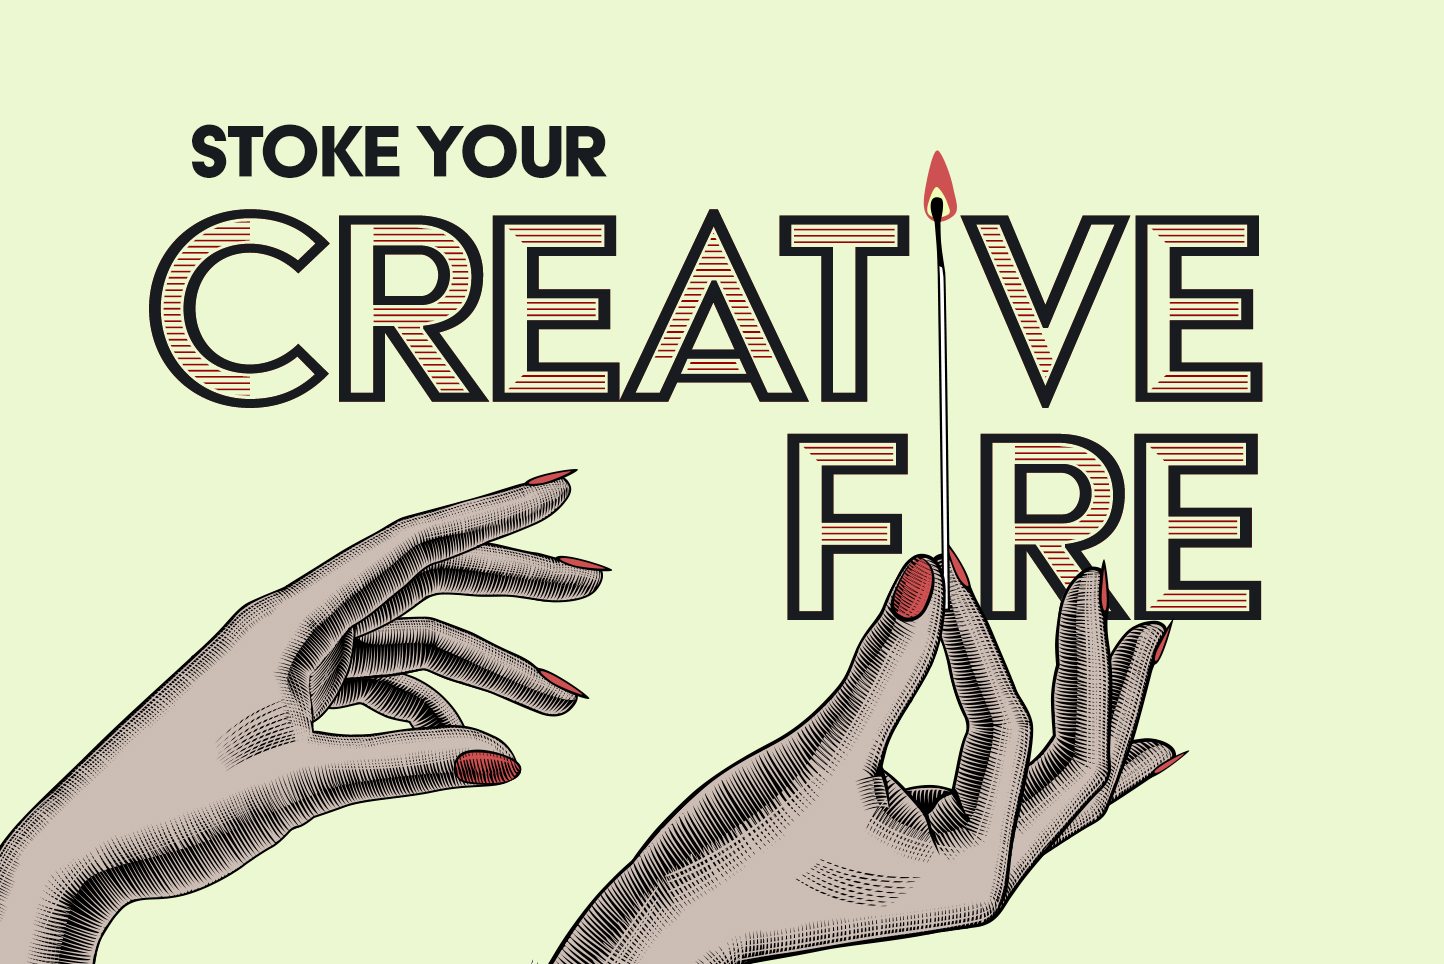 7 ways to stoke your creative fire